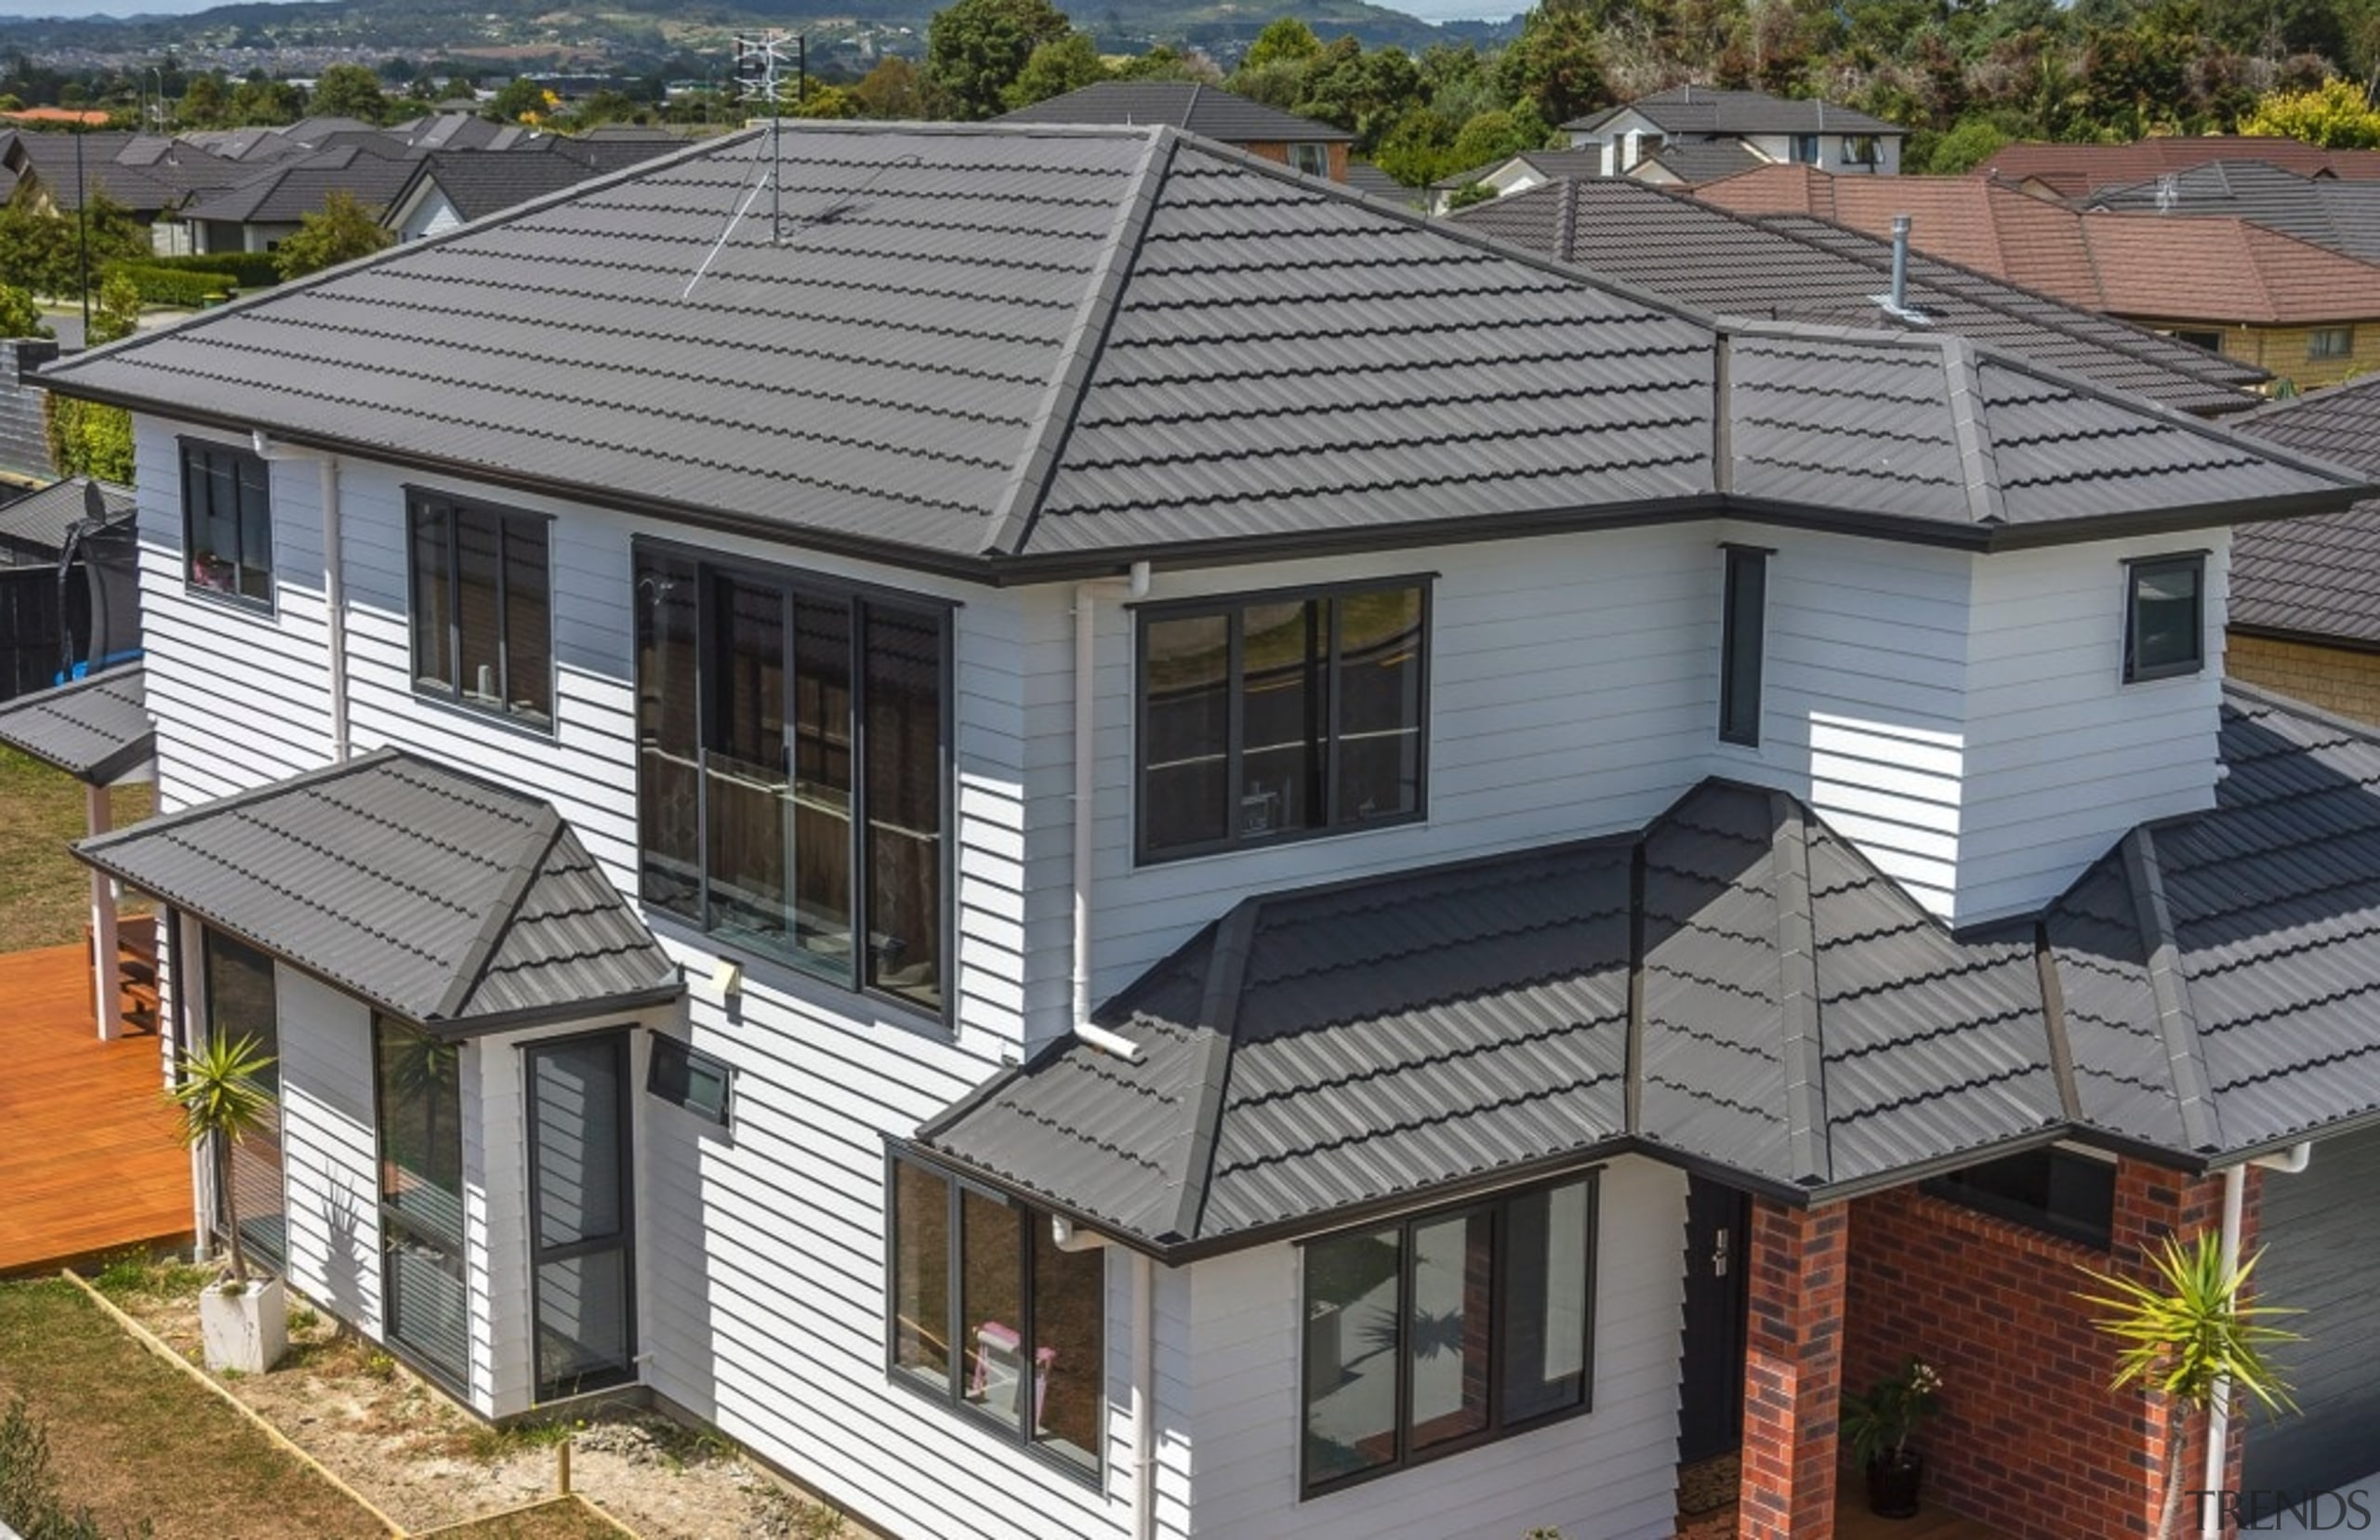 Classic - elevation | facade | home | elevation, facade, home, house, property, real estate, residential area, roof, siding, window, gray